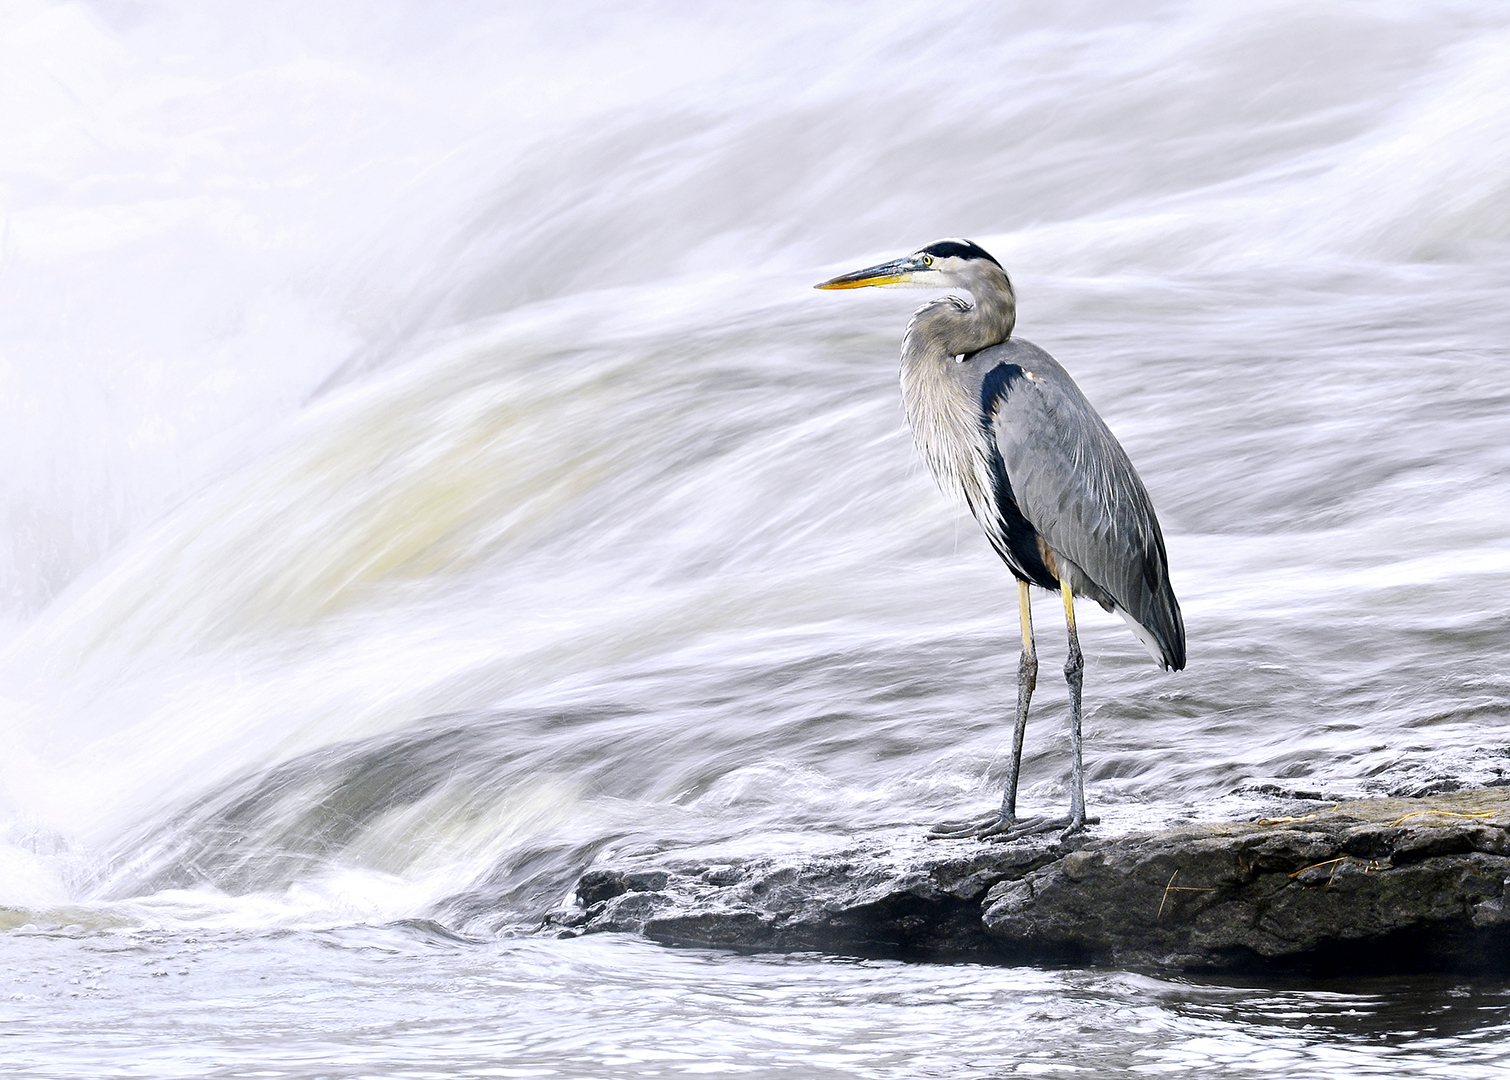 On The Rocks - Great Blue Heron